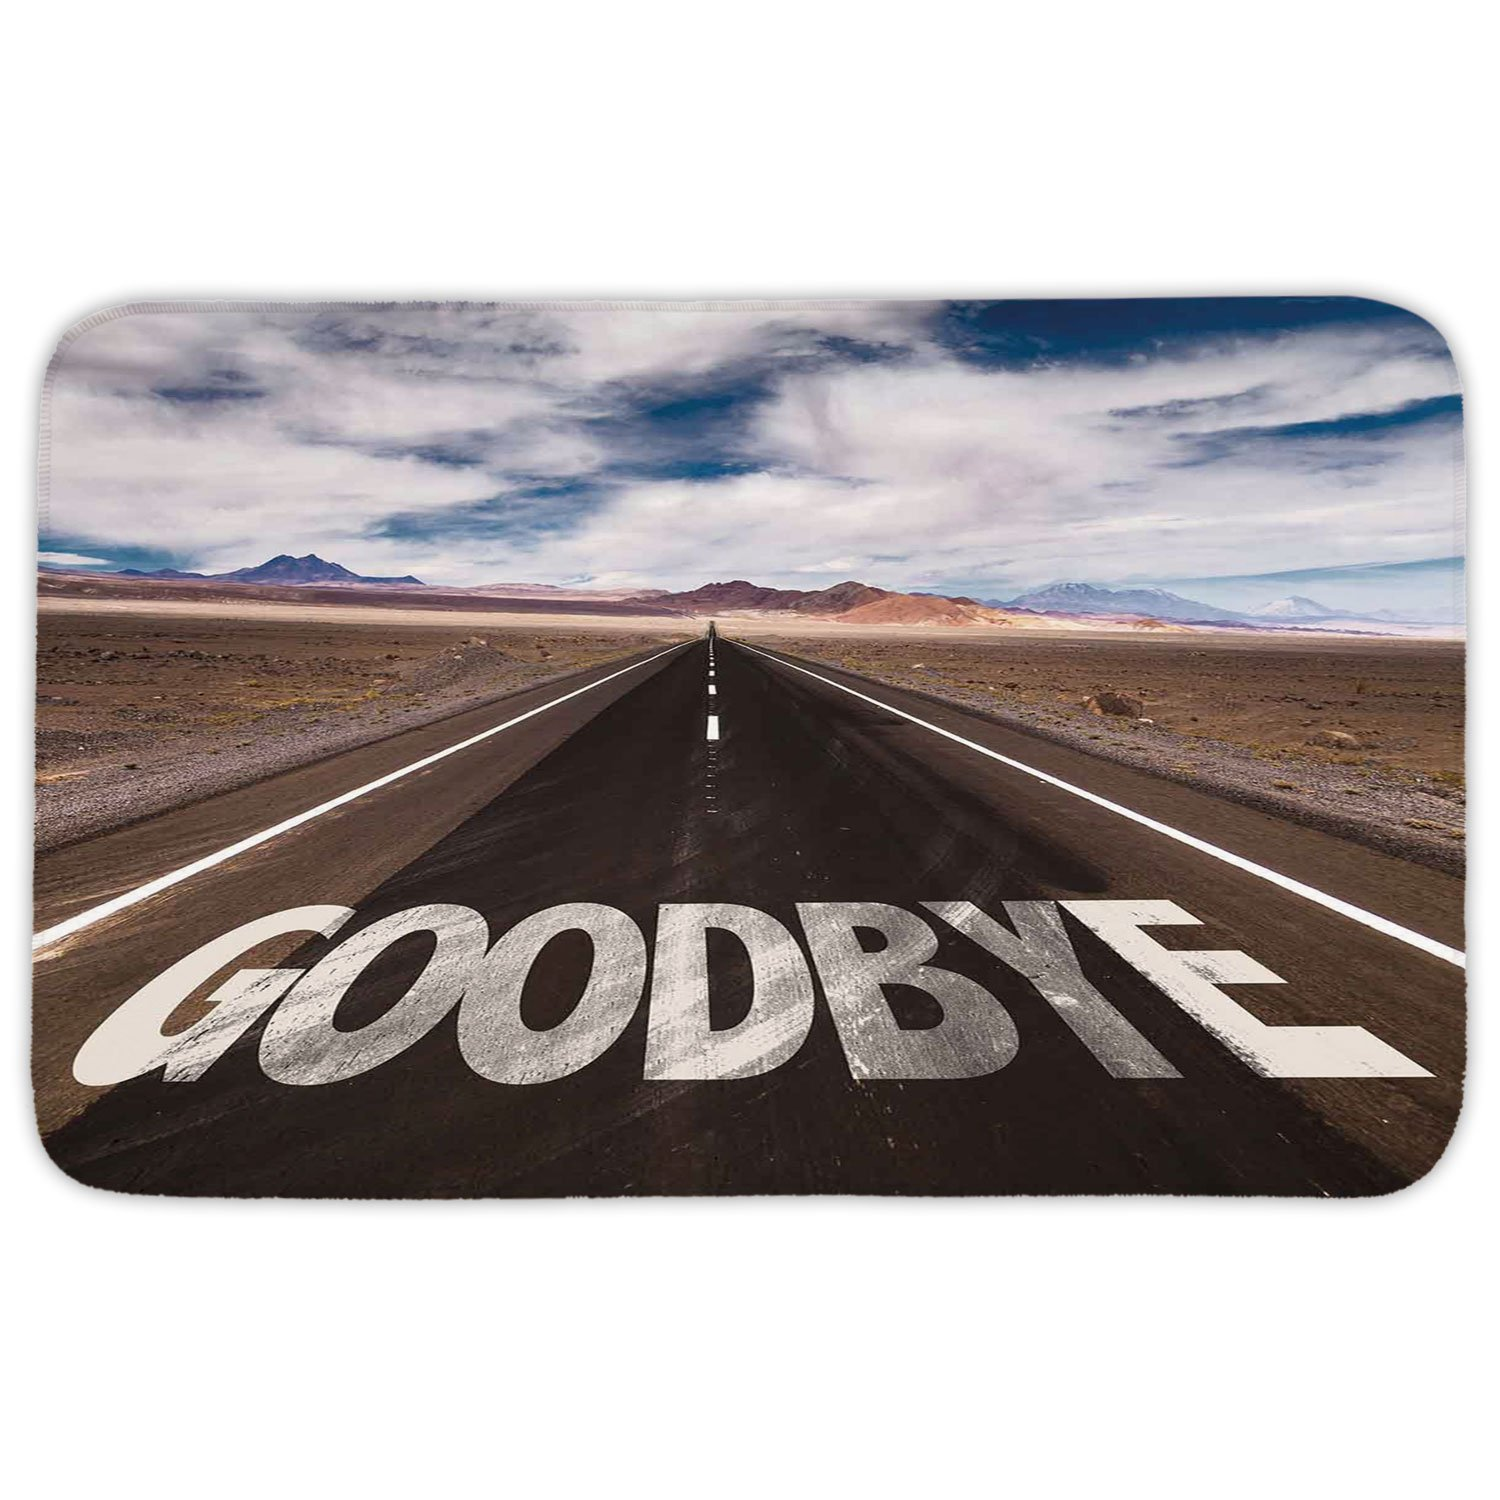 Rectangular Area Rug Mat Rug,Going Away Party Decorations,Goodbye Written on Asphalt Road Highway City Urban Words,Brown Blue White,Home Decor Mat with Non Slip Backing